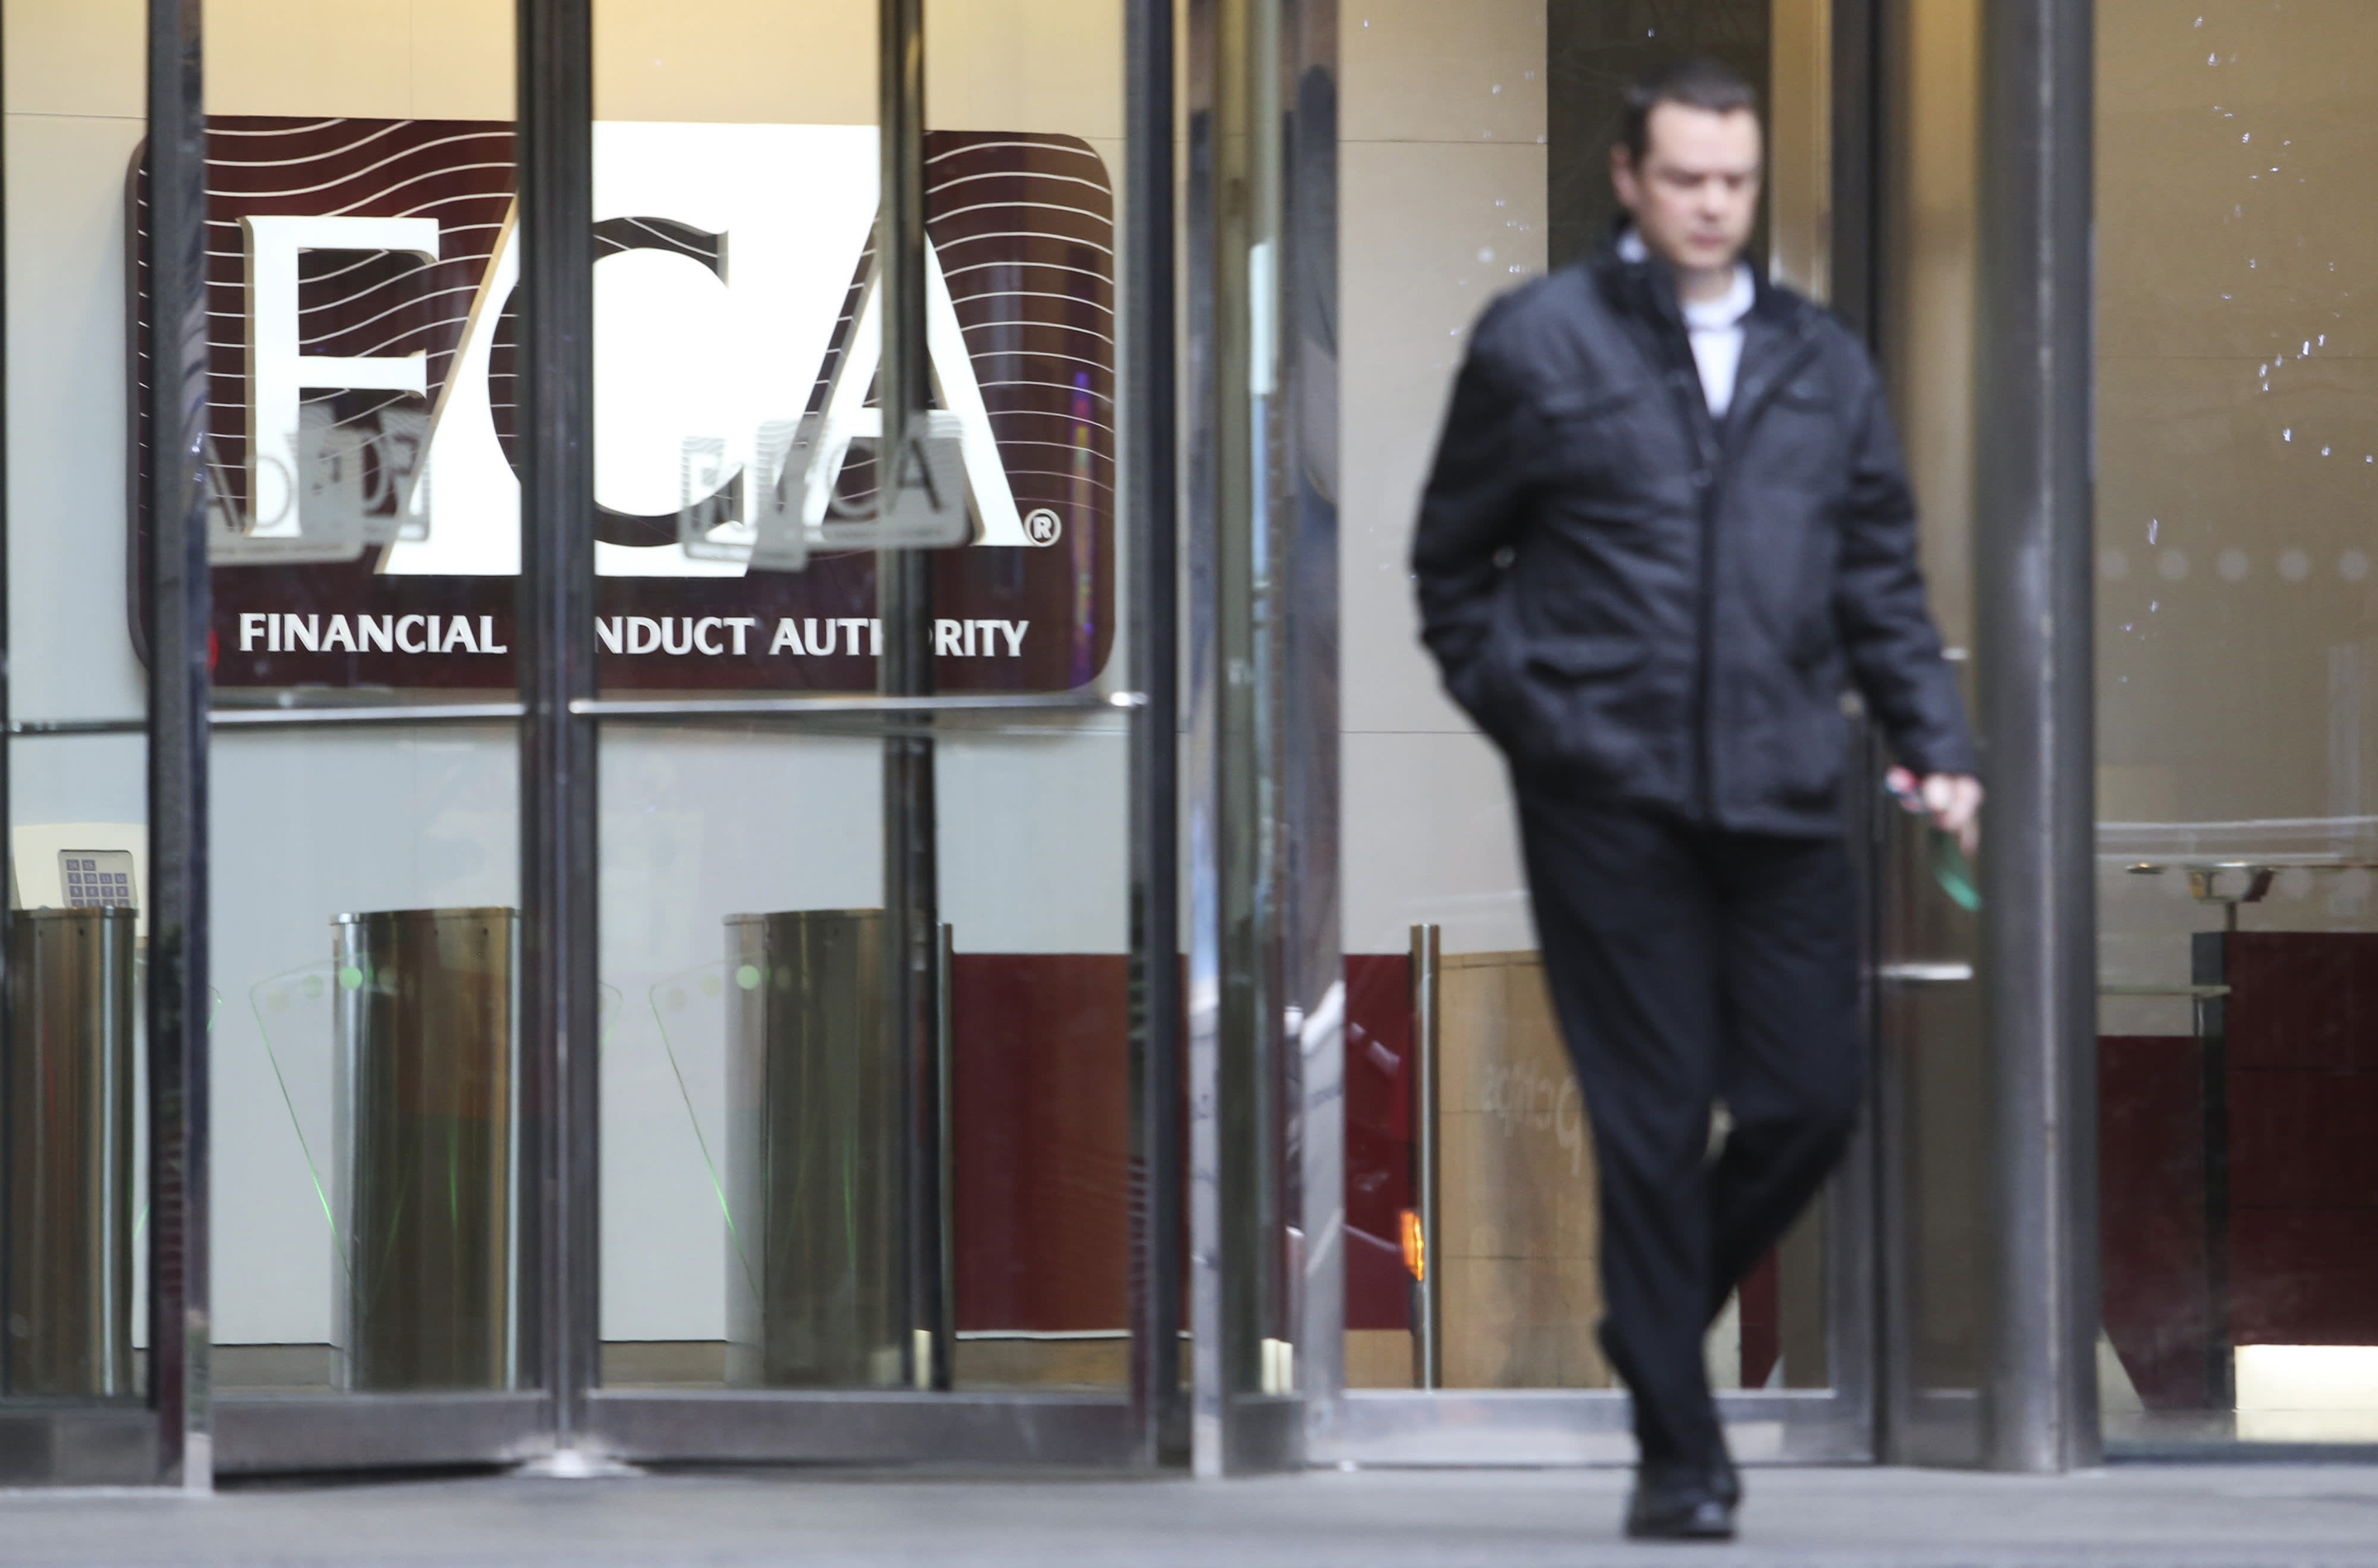 FCA publishes damning report on gender diversity